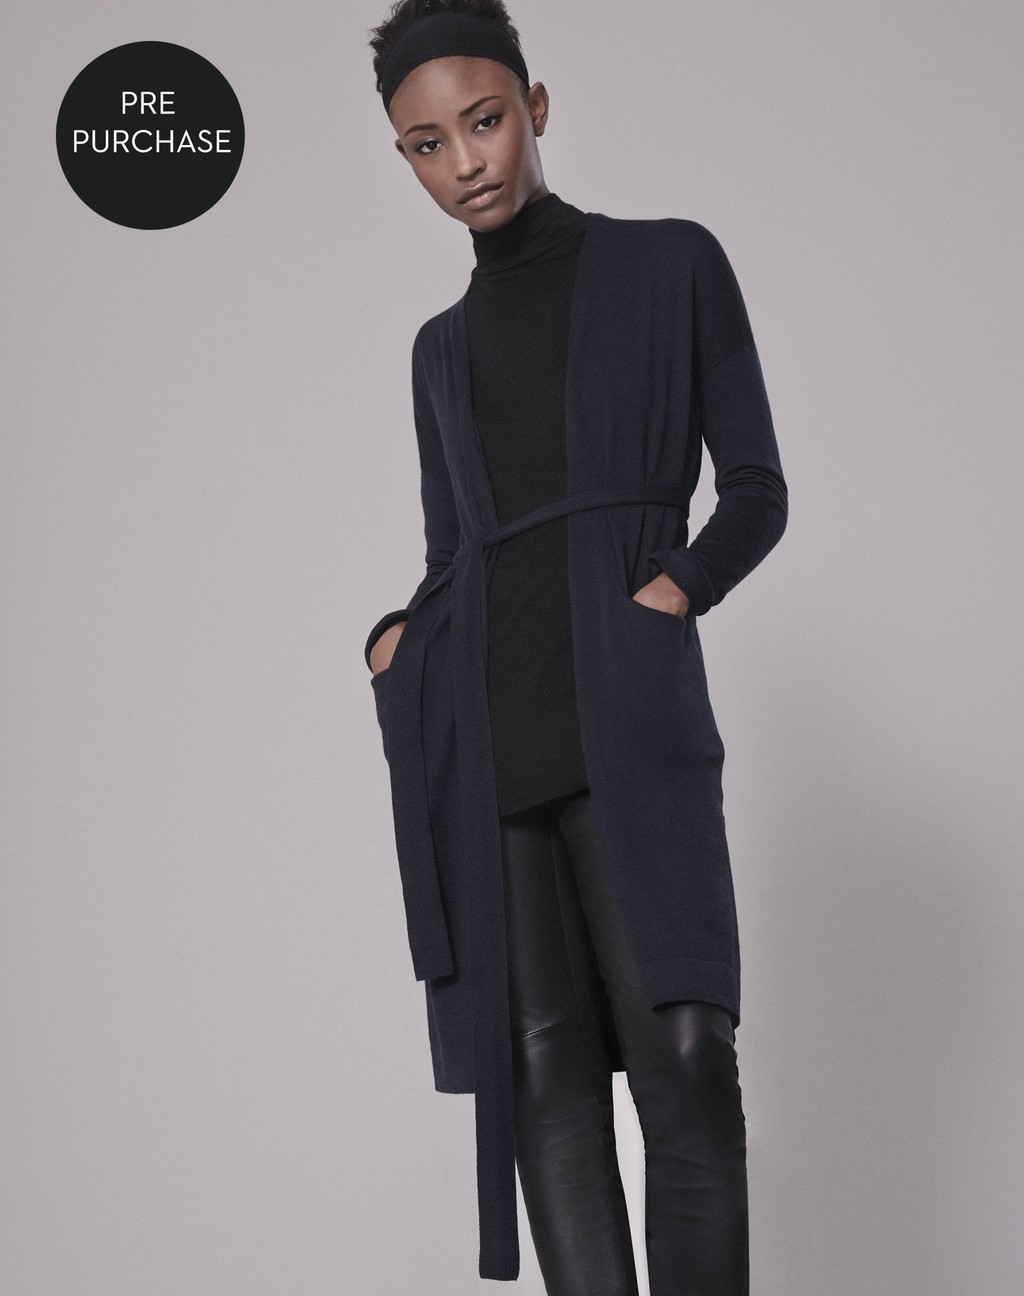 Super Fine Longline Cardigan Navy - pattern: plain; neckline: collarless open; style: open front; length: on the knee; predominant colour: black; occasions: casual; fibres: wool - 100%; fit: slim fit; waist detail: belted waist/tie at waist/drawstring; sleeve length: long sleeve; sleeve style: standard; texture group: knits/crochet; pattern type: fabric; season: s/s 2016; wardrobe: basic